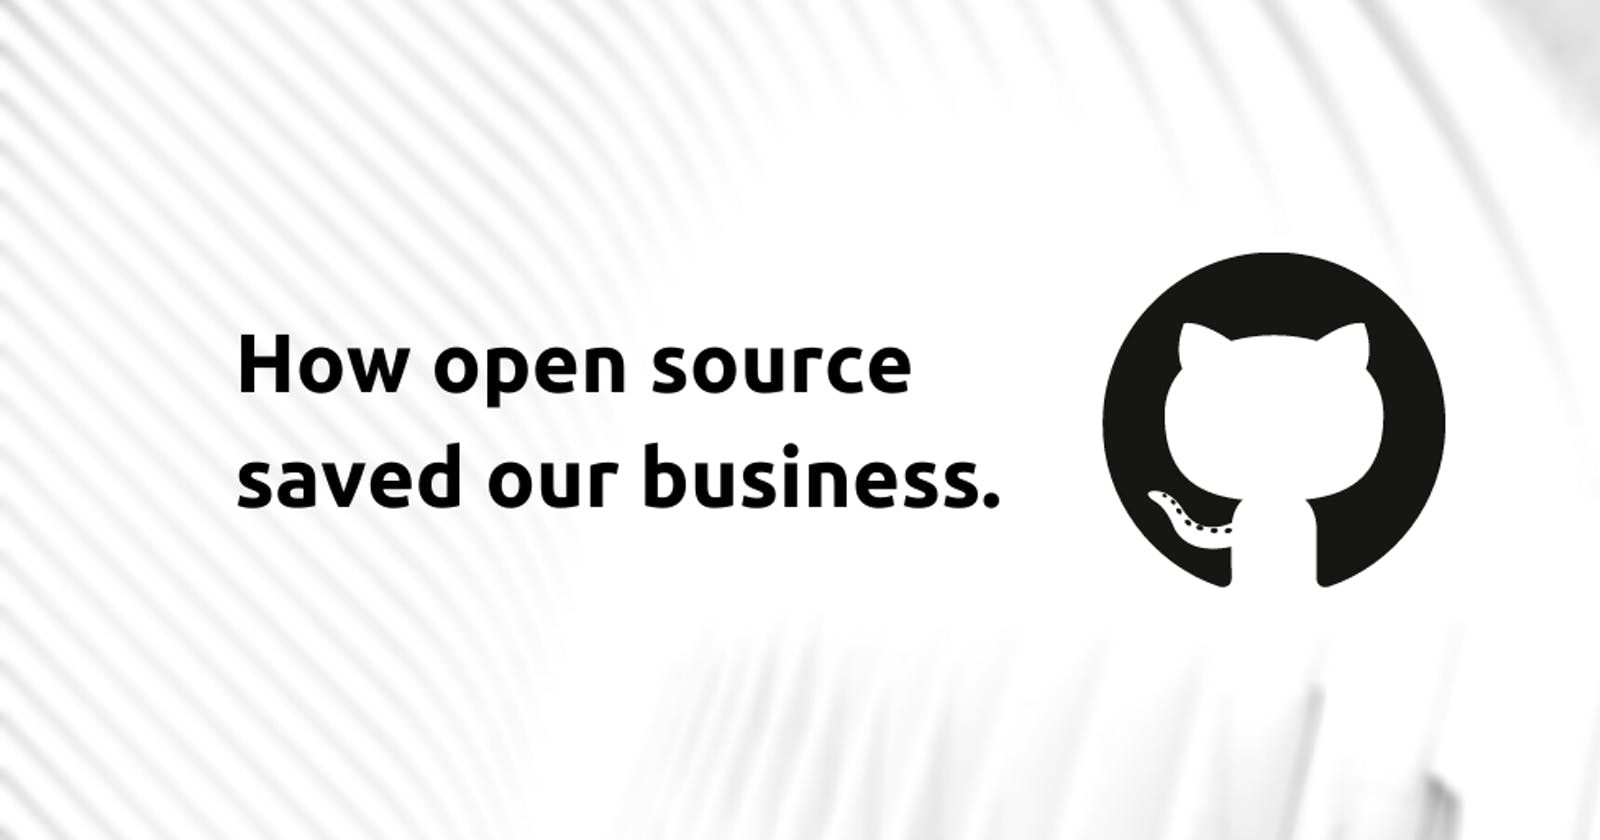 How open source saved our business